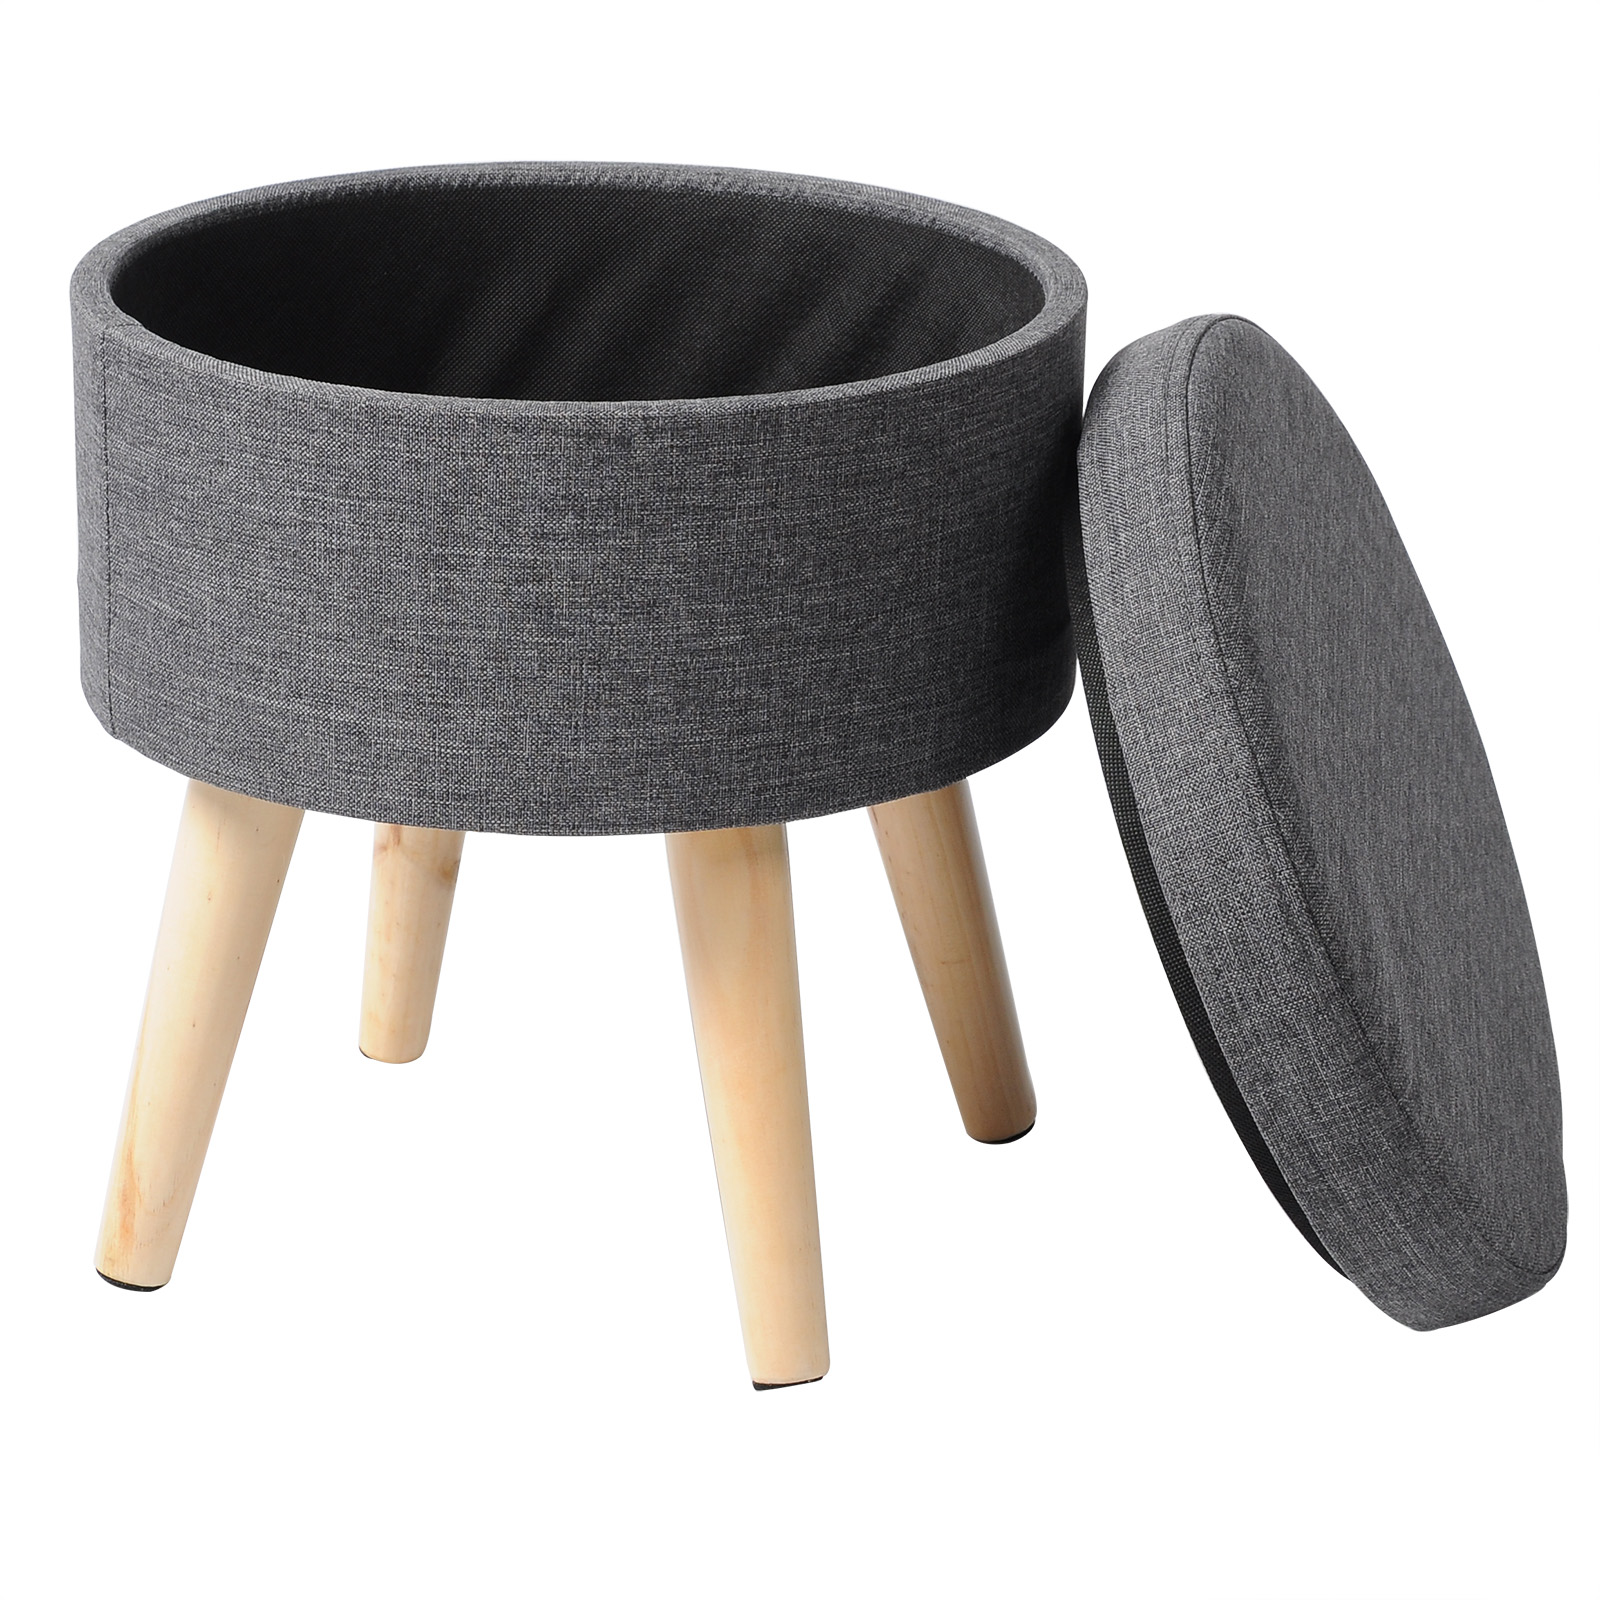 tabouret rond pouf coffre de rangement repose pieds en lin. Black Bedroom Furniture Sets. Home Design Ideas